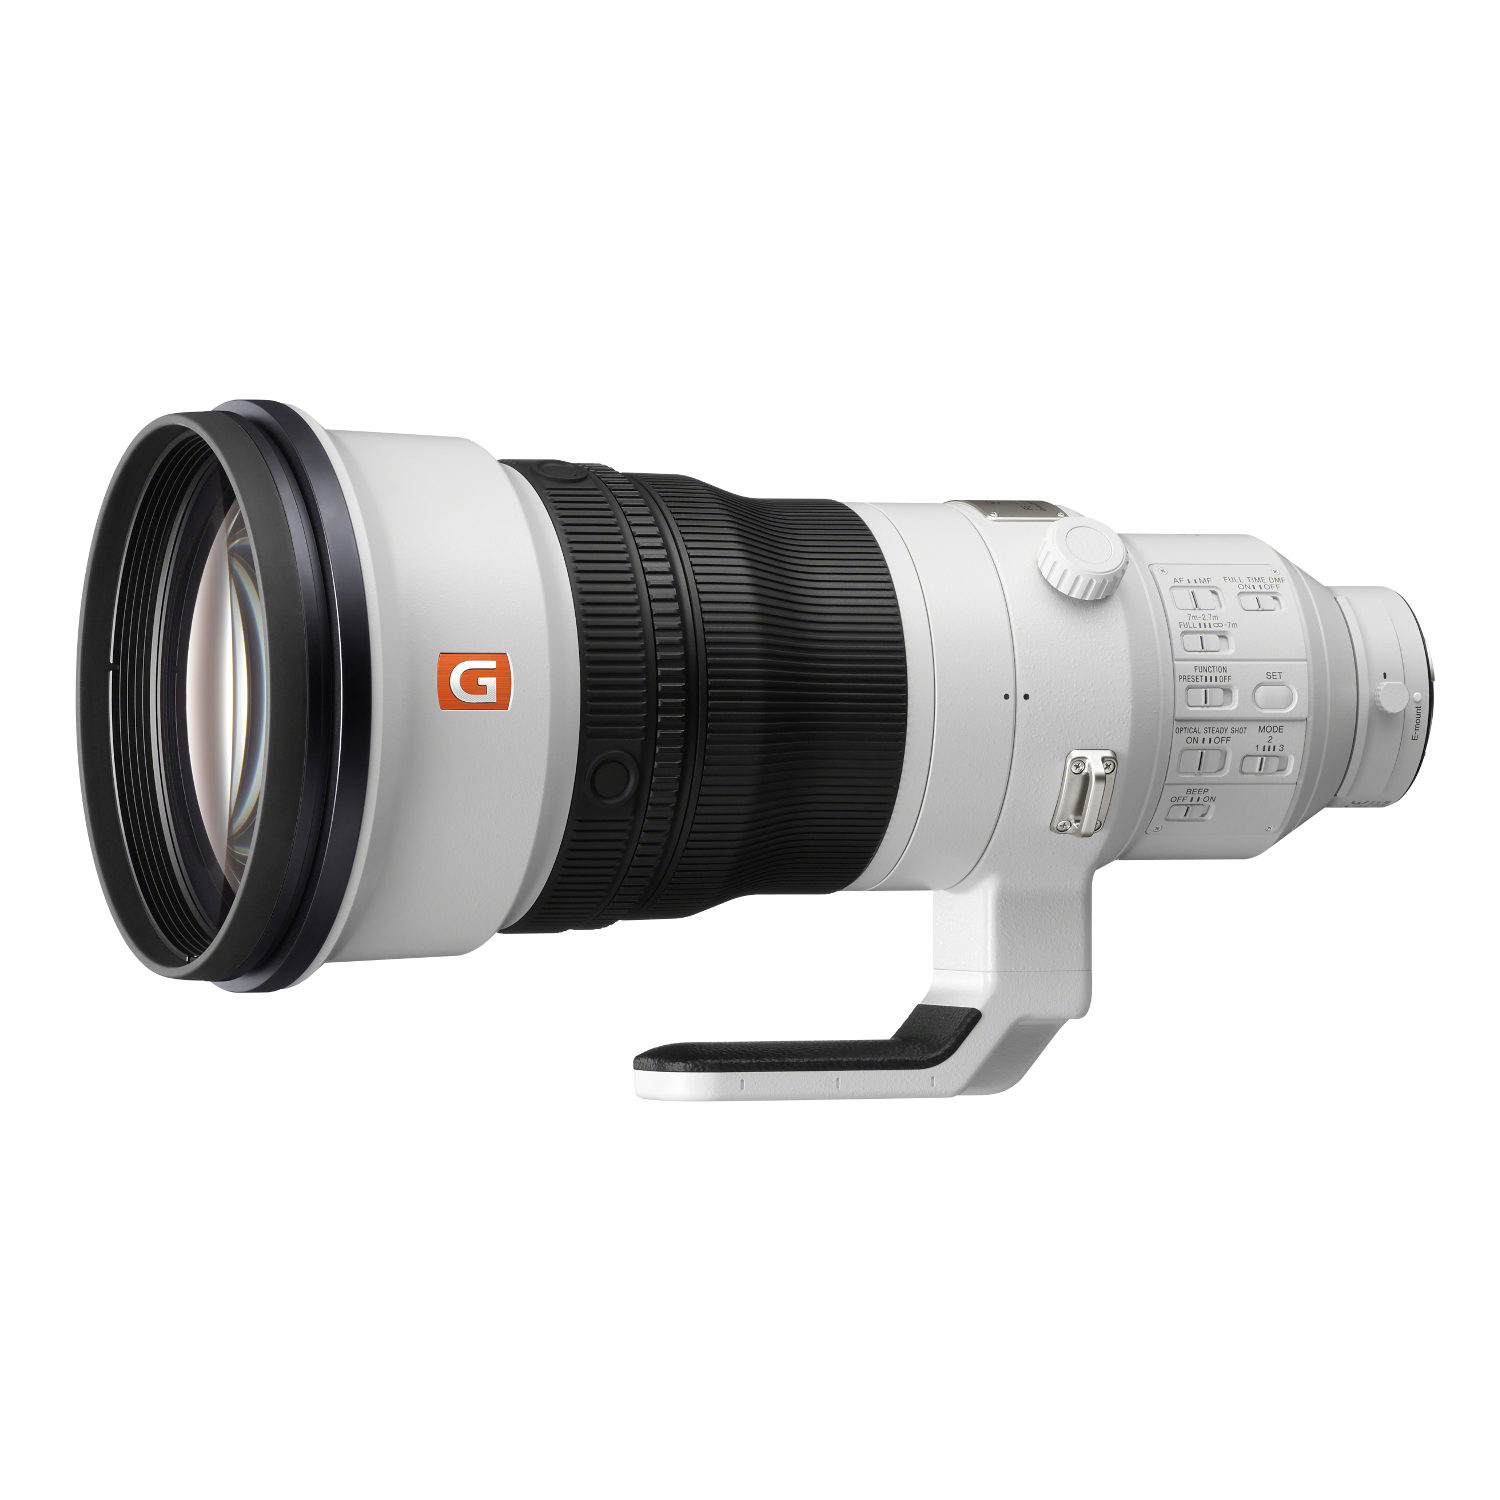 Sony FE 400mm f/2.8 GM OSS objectief (SEL400F28GM.SYX)